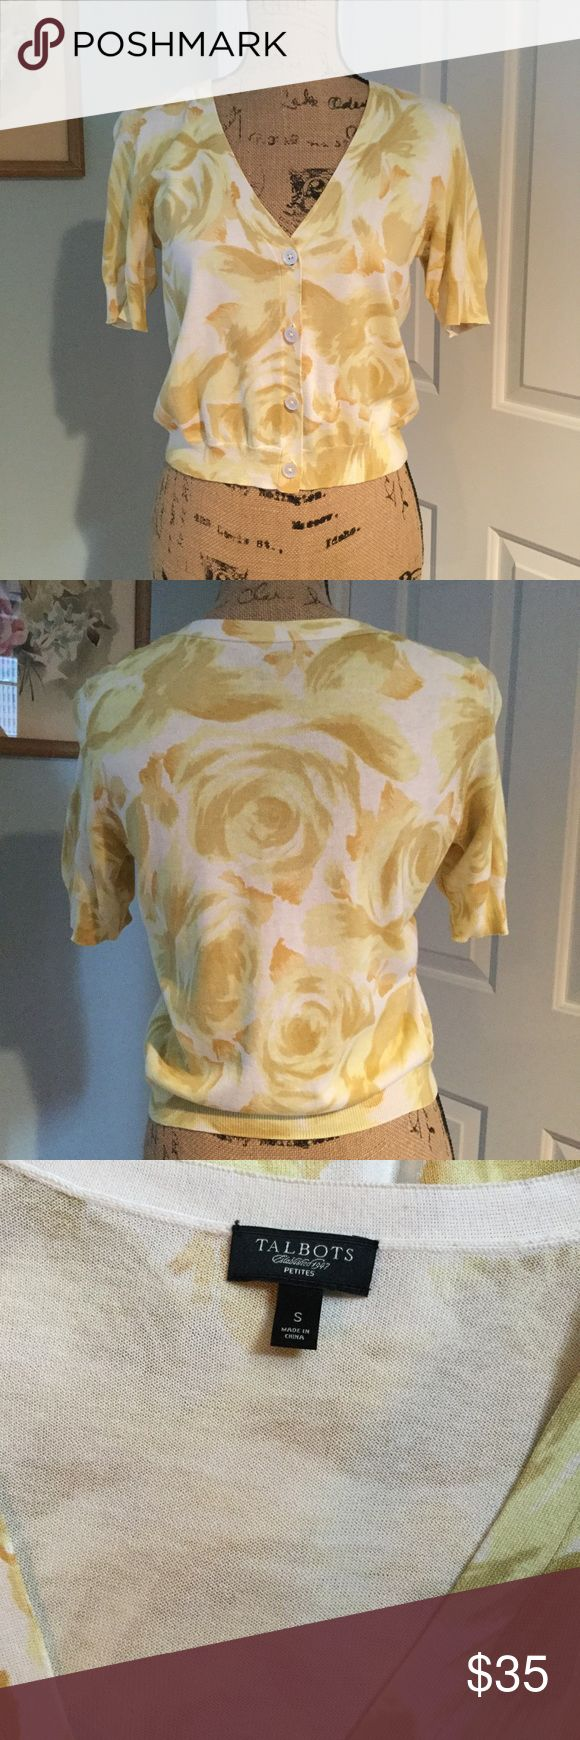 Talbots rose cardigan Beautiful Talbots petites sweater cardigan size small. Yellow, gold rose pattern. So pretty! Talbots Sweaters